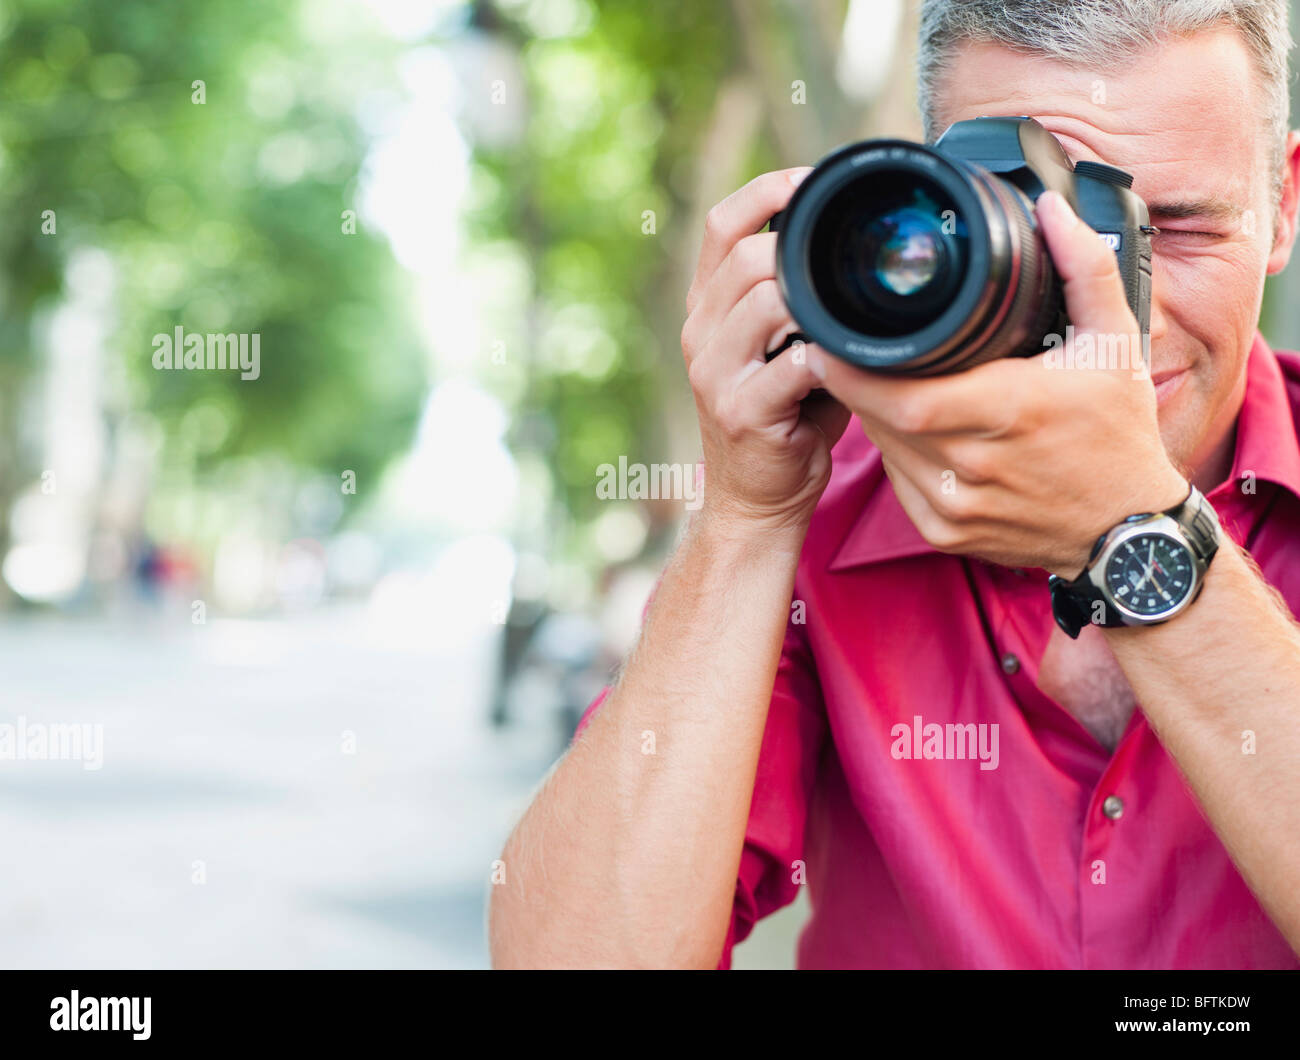 man with camera taking picture - Stock Image